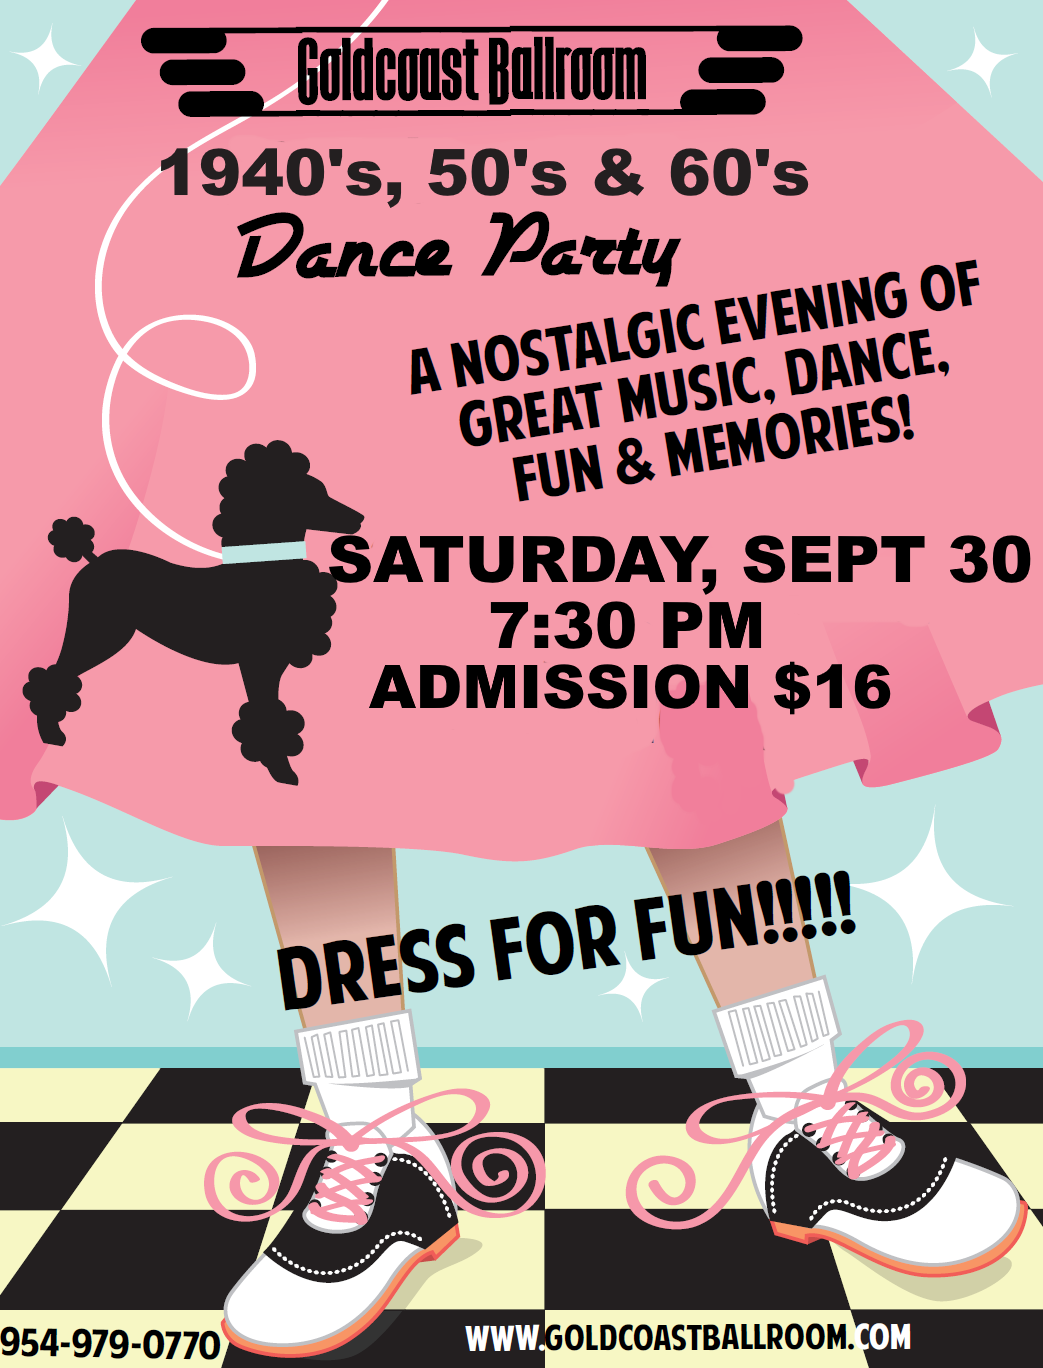 1940'S, 50's & 60's Dance Party - Sept 30, 2017 - at Goldcoast Ballroom!